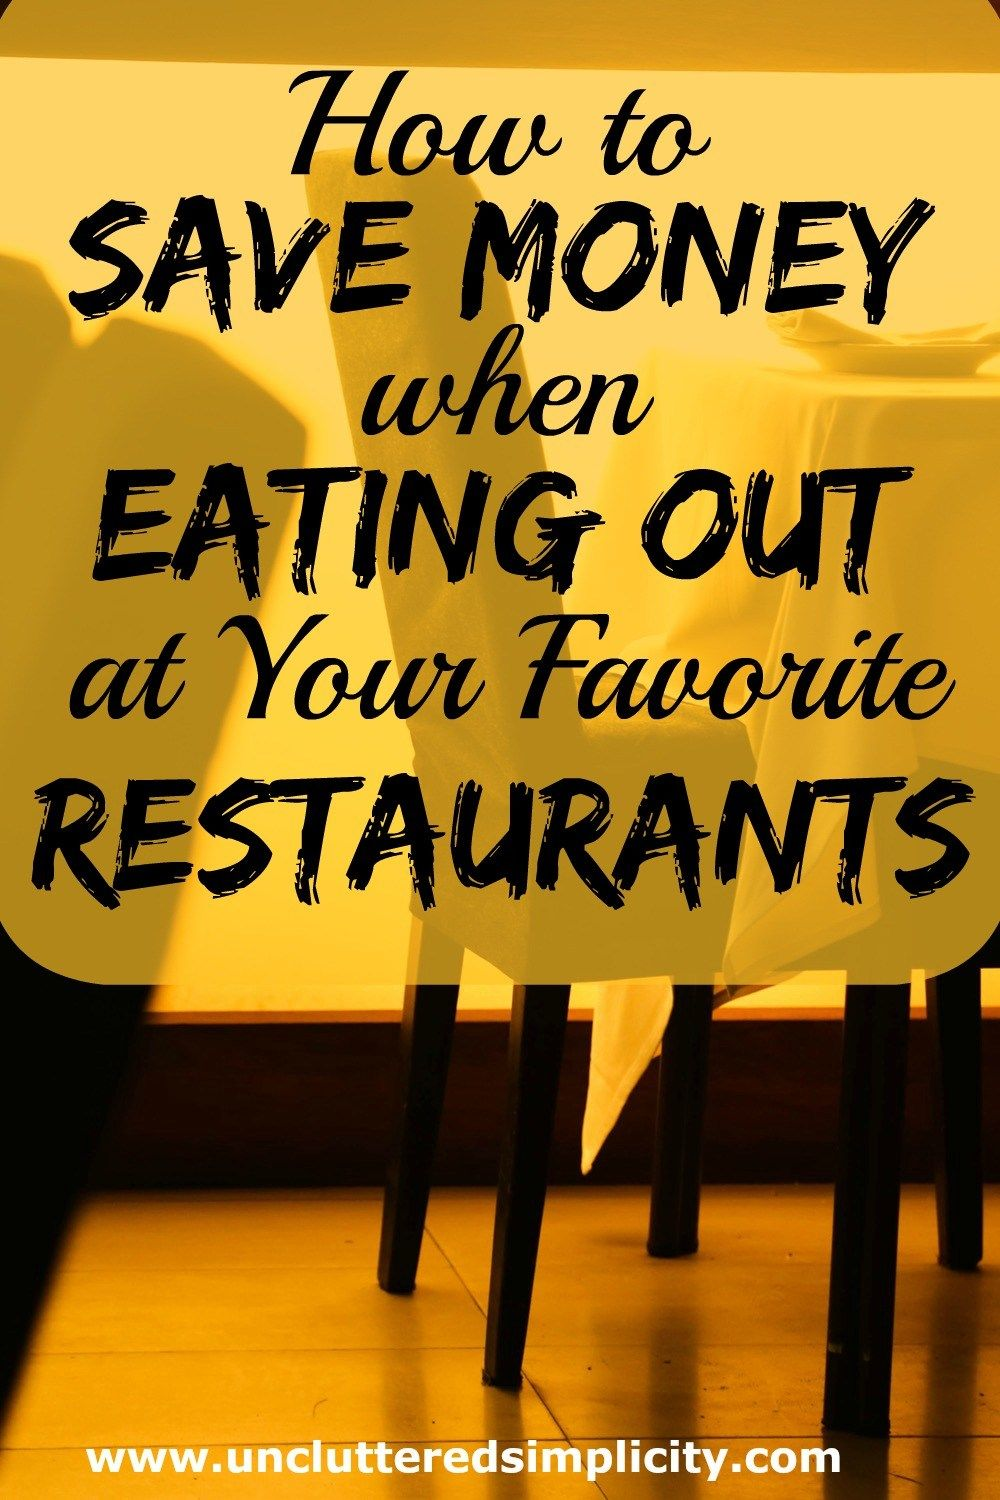 12 Ways to Save Money When Eating Out at a Restaurant